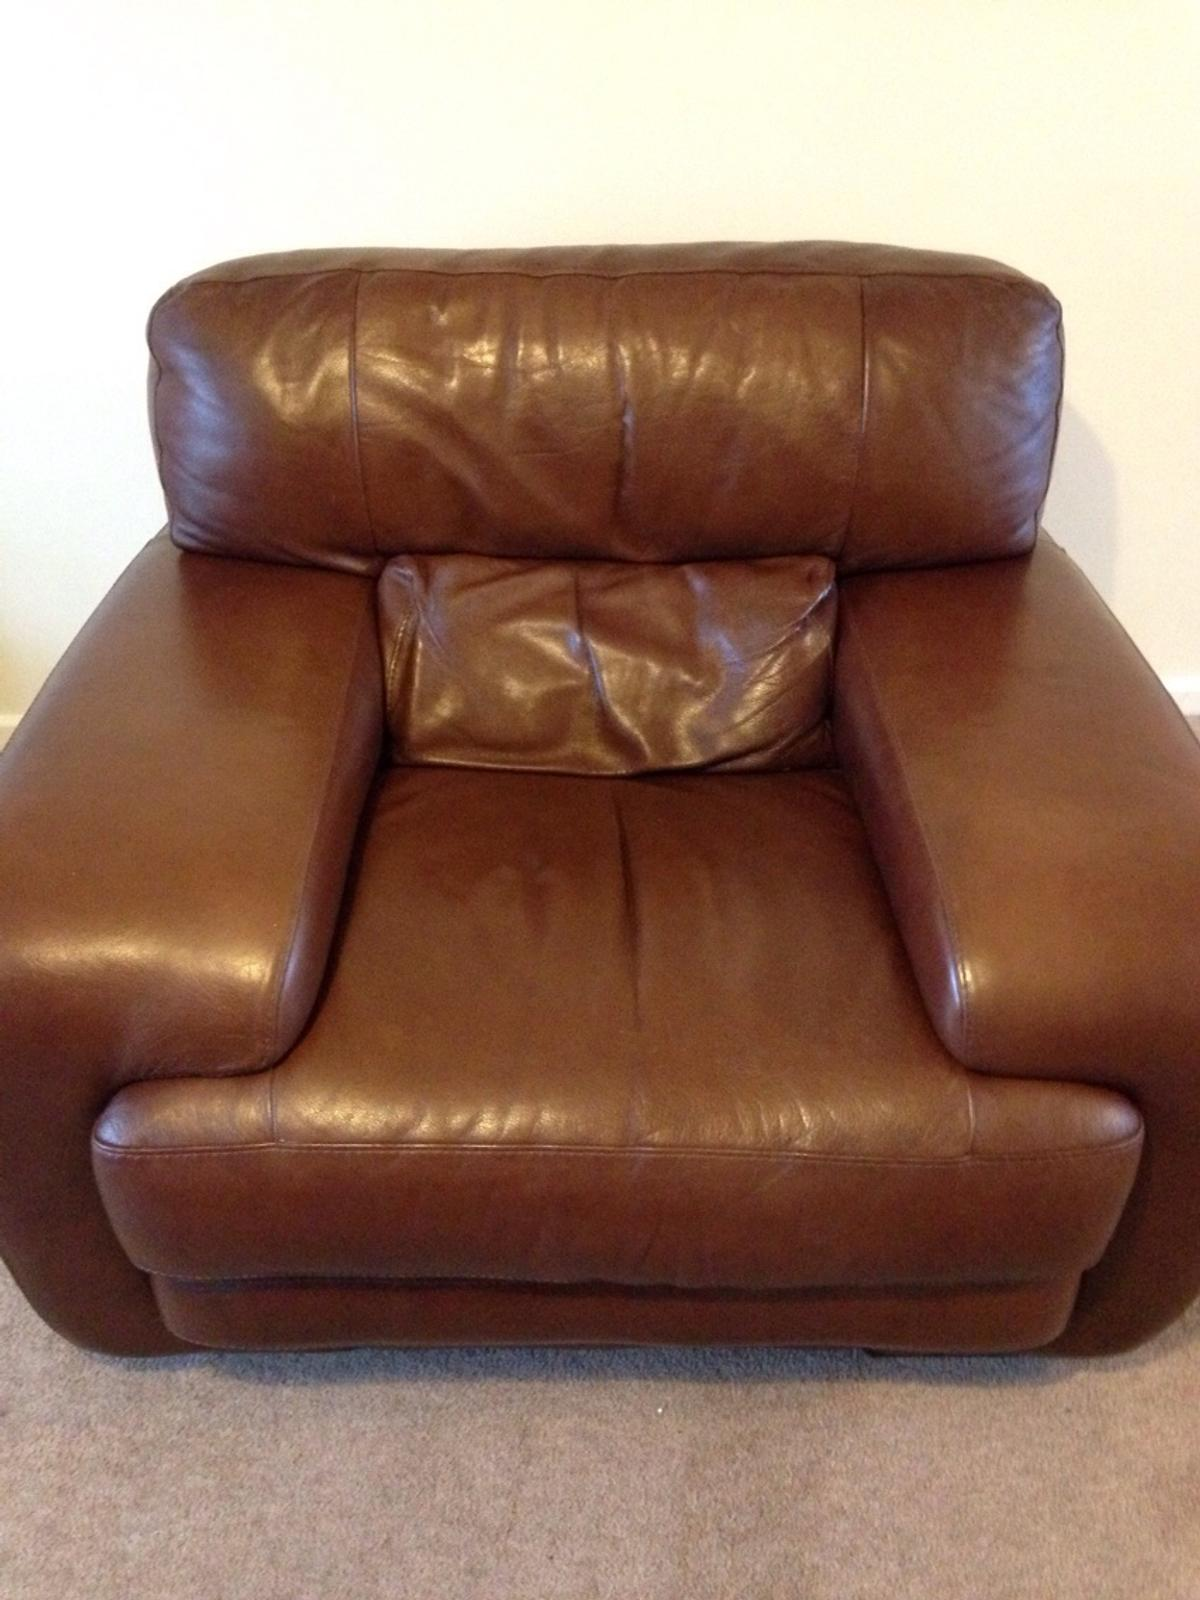 Sofitalia Leather Couch And Chair In